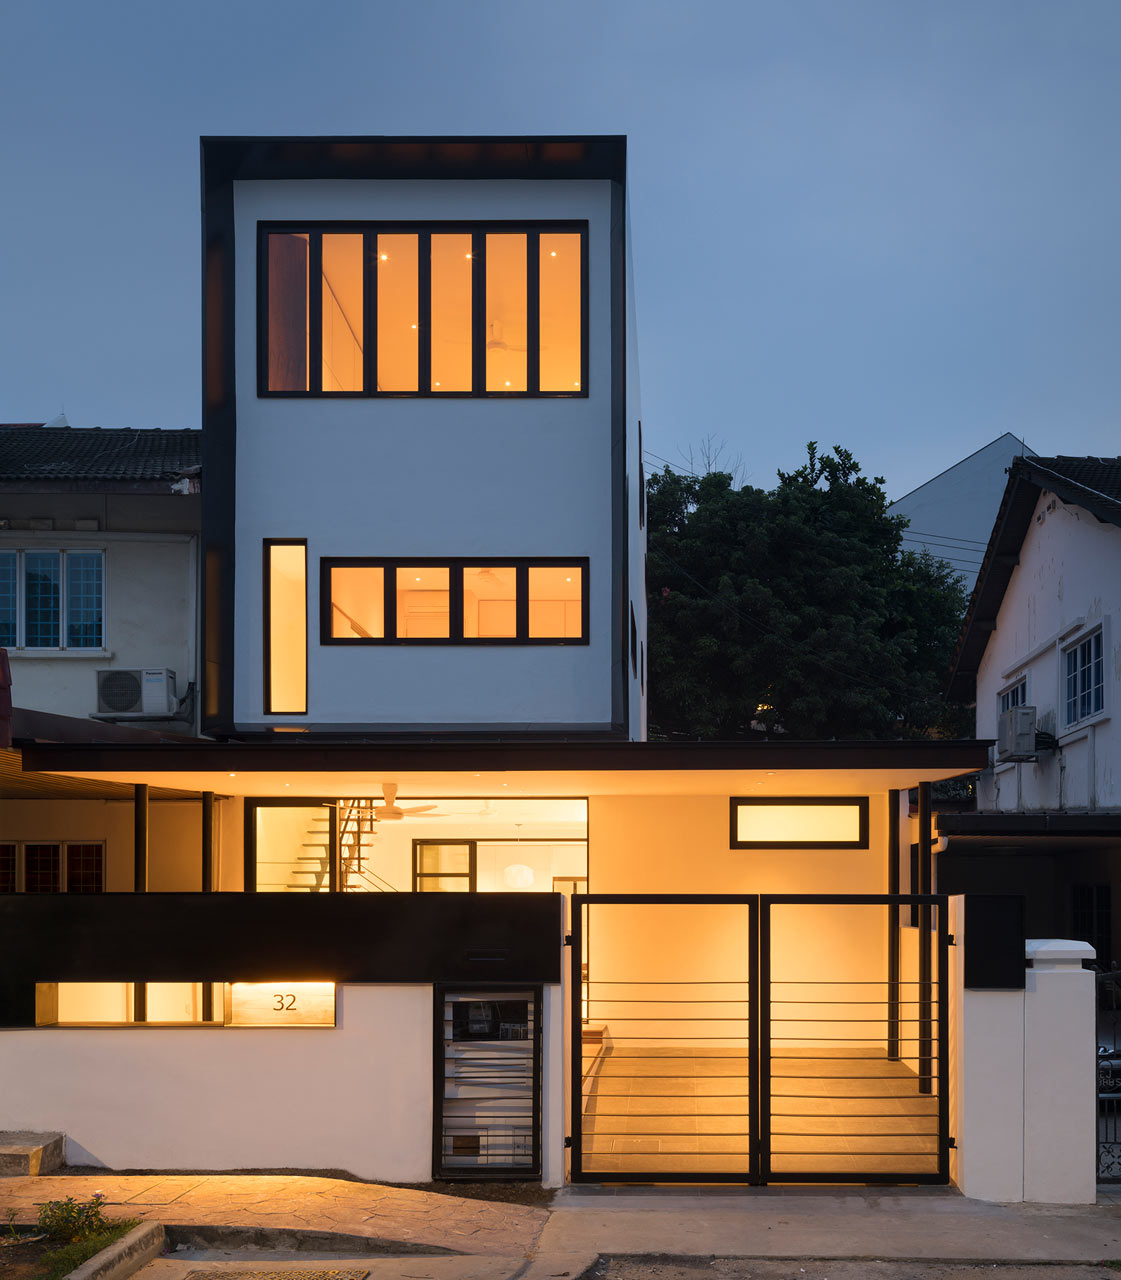 Rectangular front facade with incorporated modern windows gives this terrace house a more modern outlook